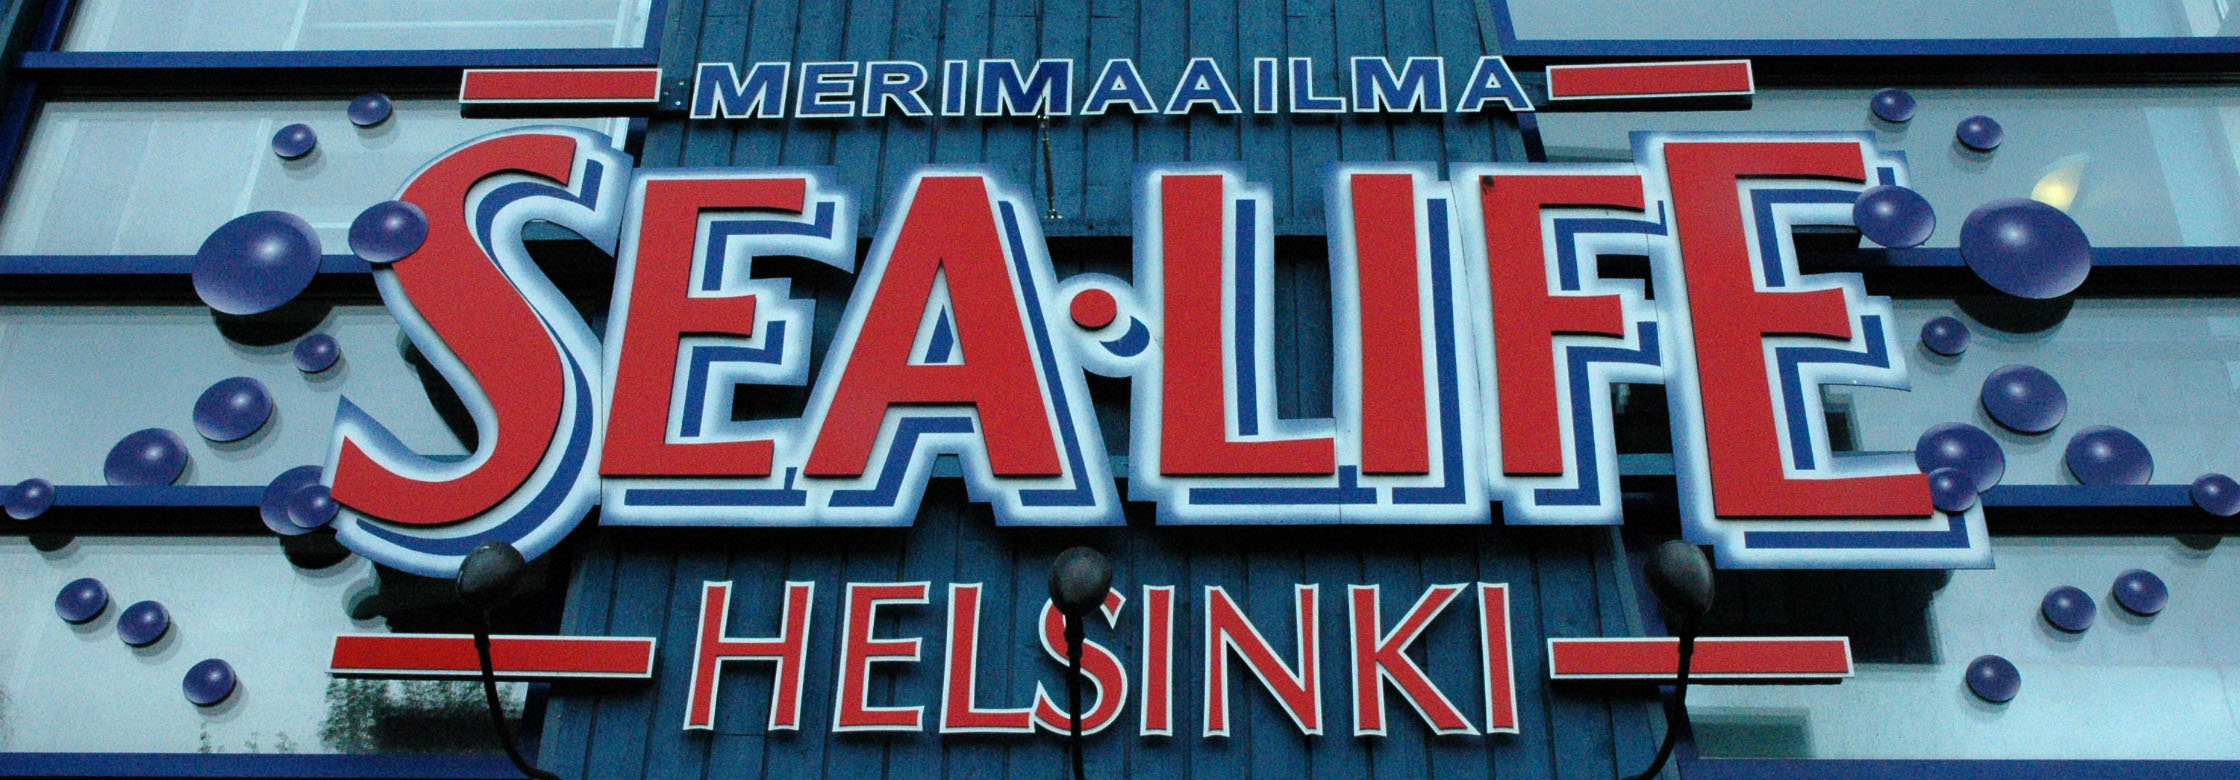 File:Sea Life Helsinki.jpg - Wikimedia Commons